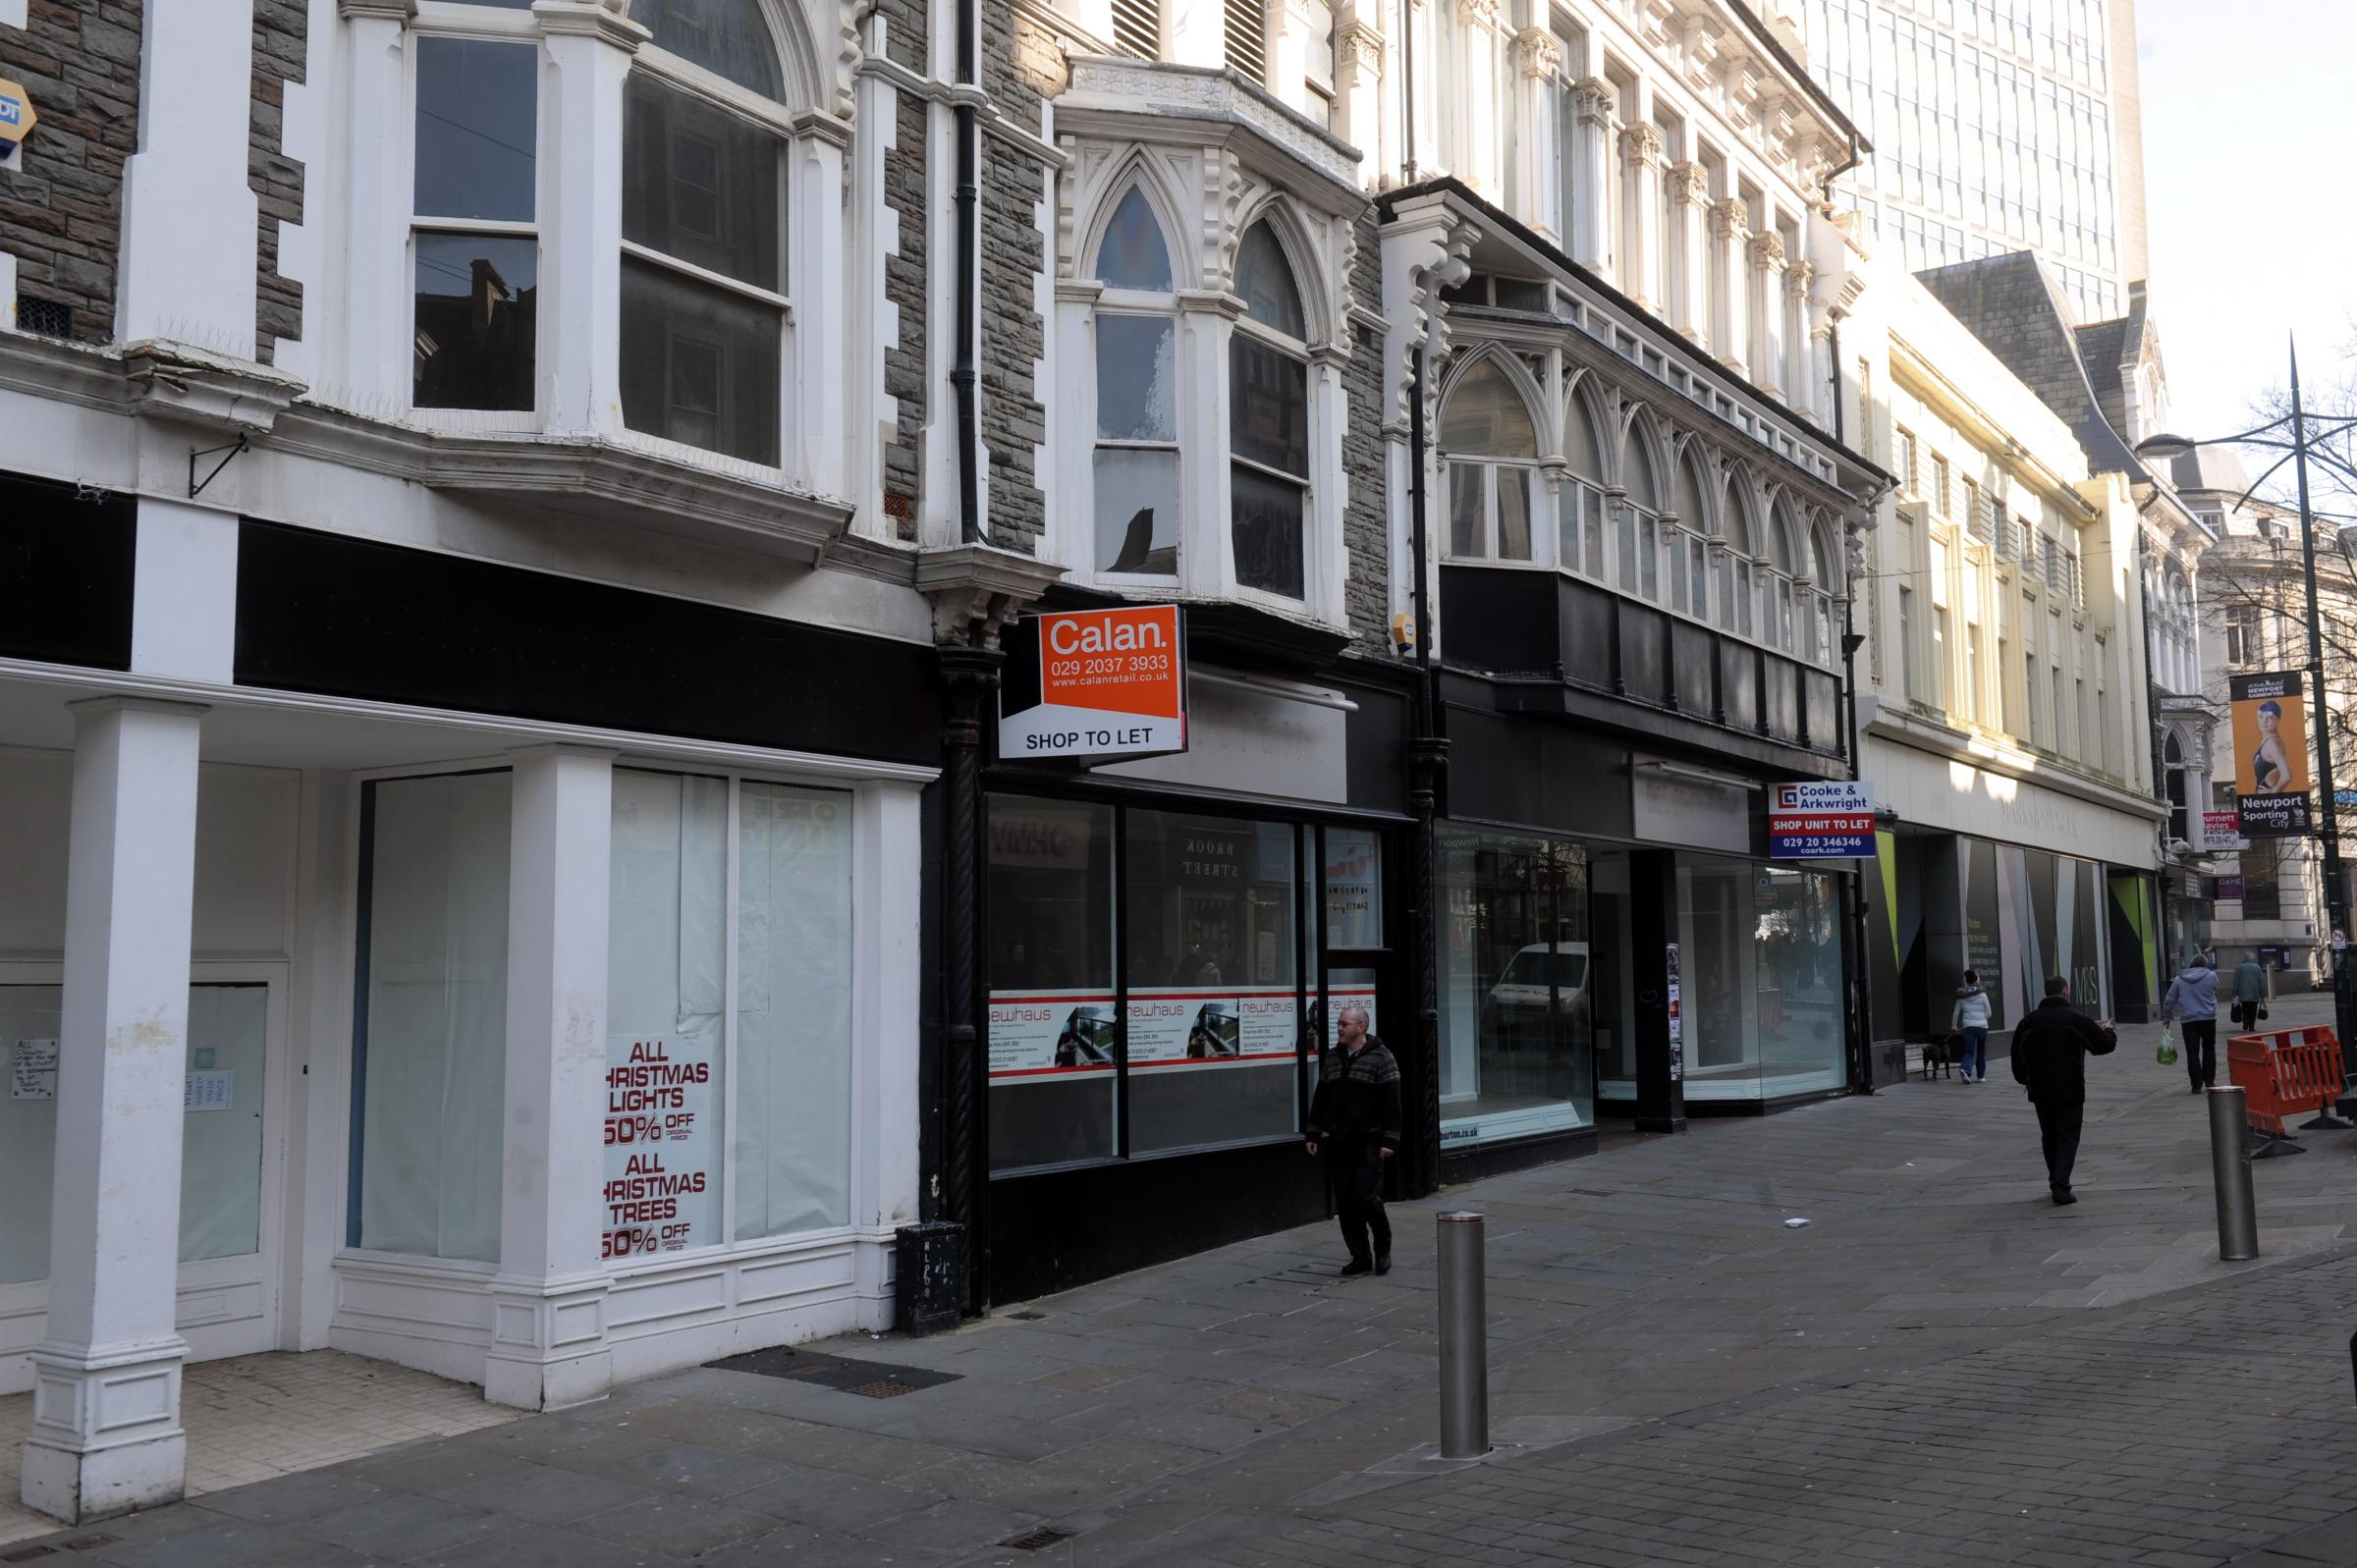 Newport traders to get rate relief to fill empty shops